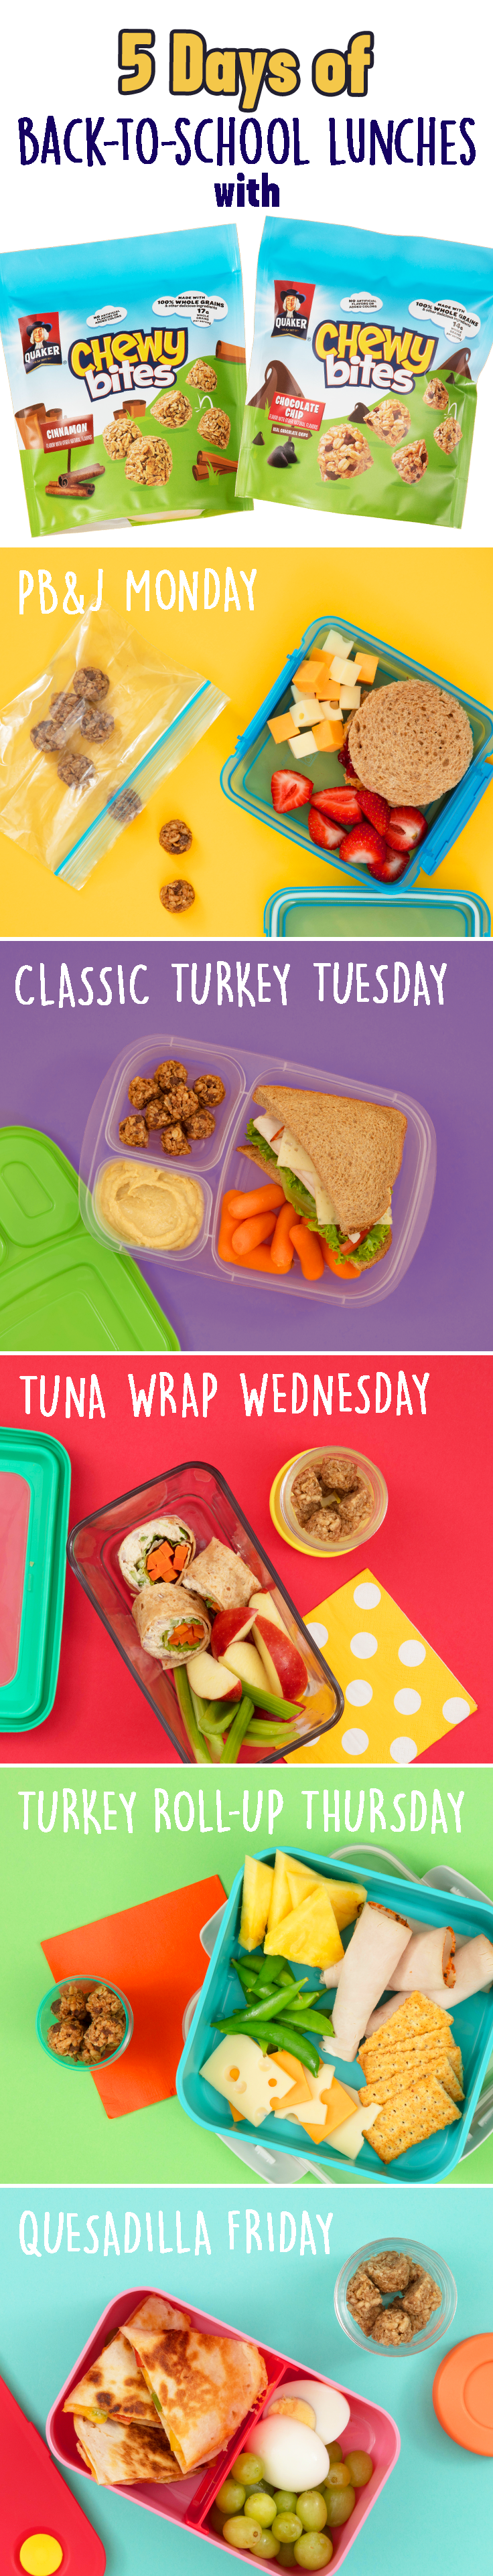 Your little one will never trade lunch snacks again! Pack a unique, balanced lunch every day of the week with the help of NEW Quaker® Chewy® Bites, made with 100% whole grains, real chocolate chips, and other delicious ingredients. Just pair a classic sandwich, PB&J, wrap, or even a quesadilla with their favorite, bite-sized Quaker® snack, some fresh fruit, and veggies. Throw in some words of encouragement for extra smiles!